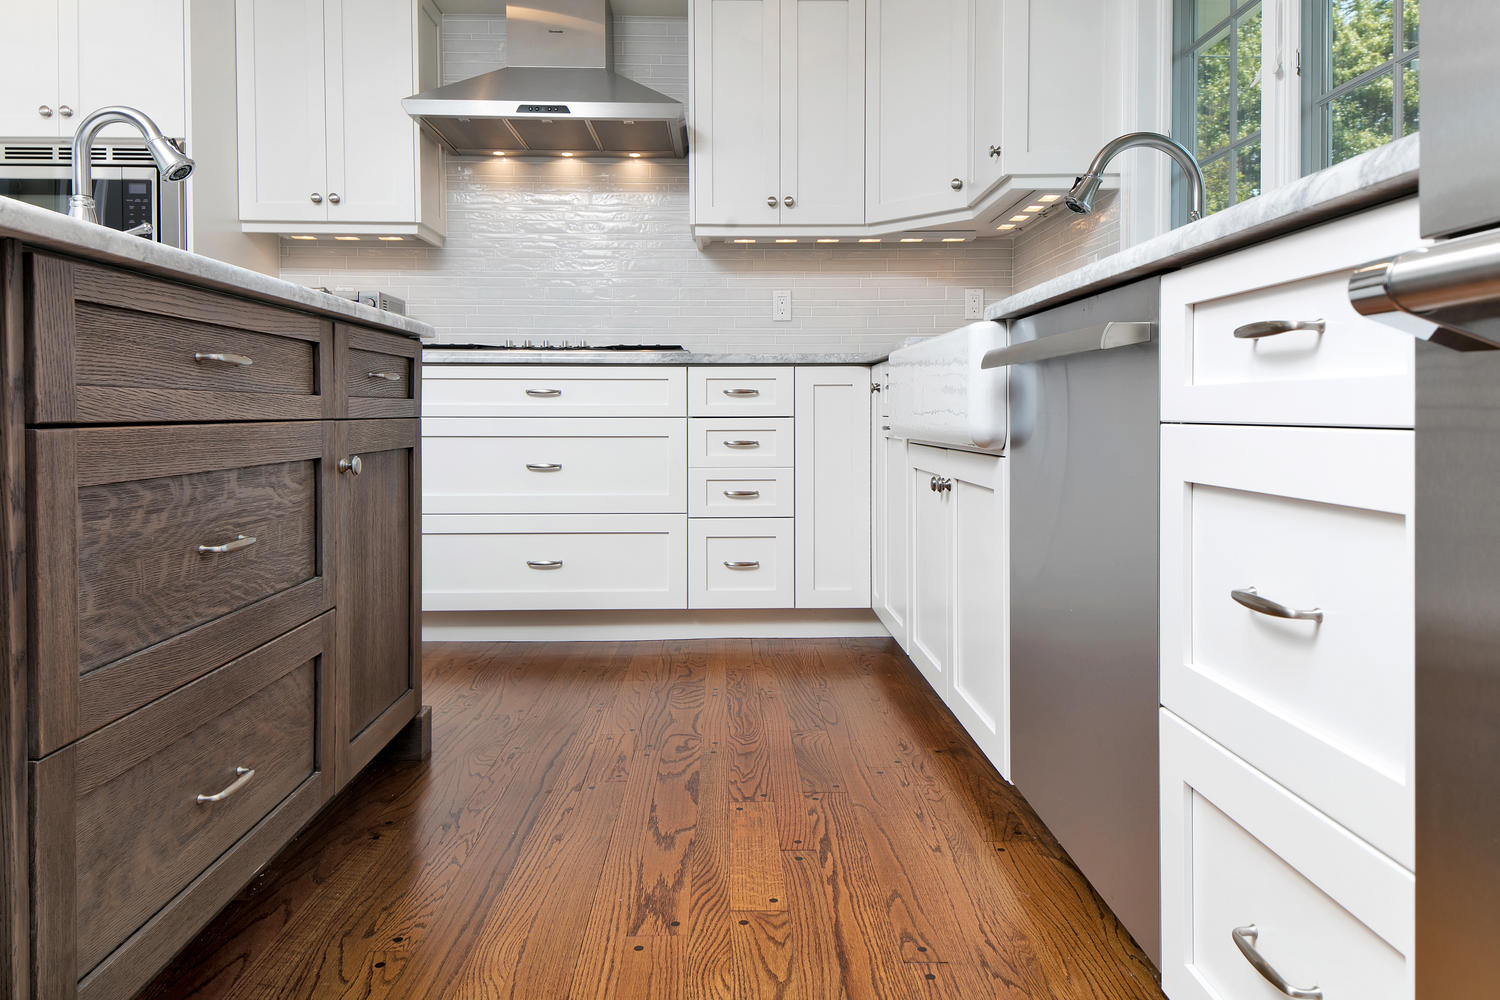 south jersey kitchen remodeling chicken decor custom built shaker cabinets sea girt new by design ...